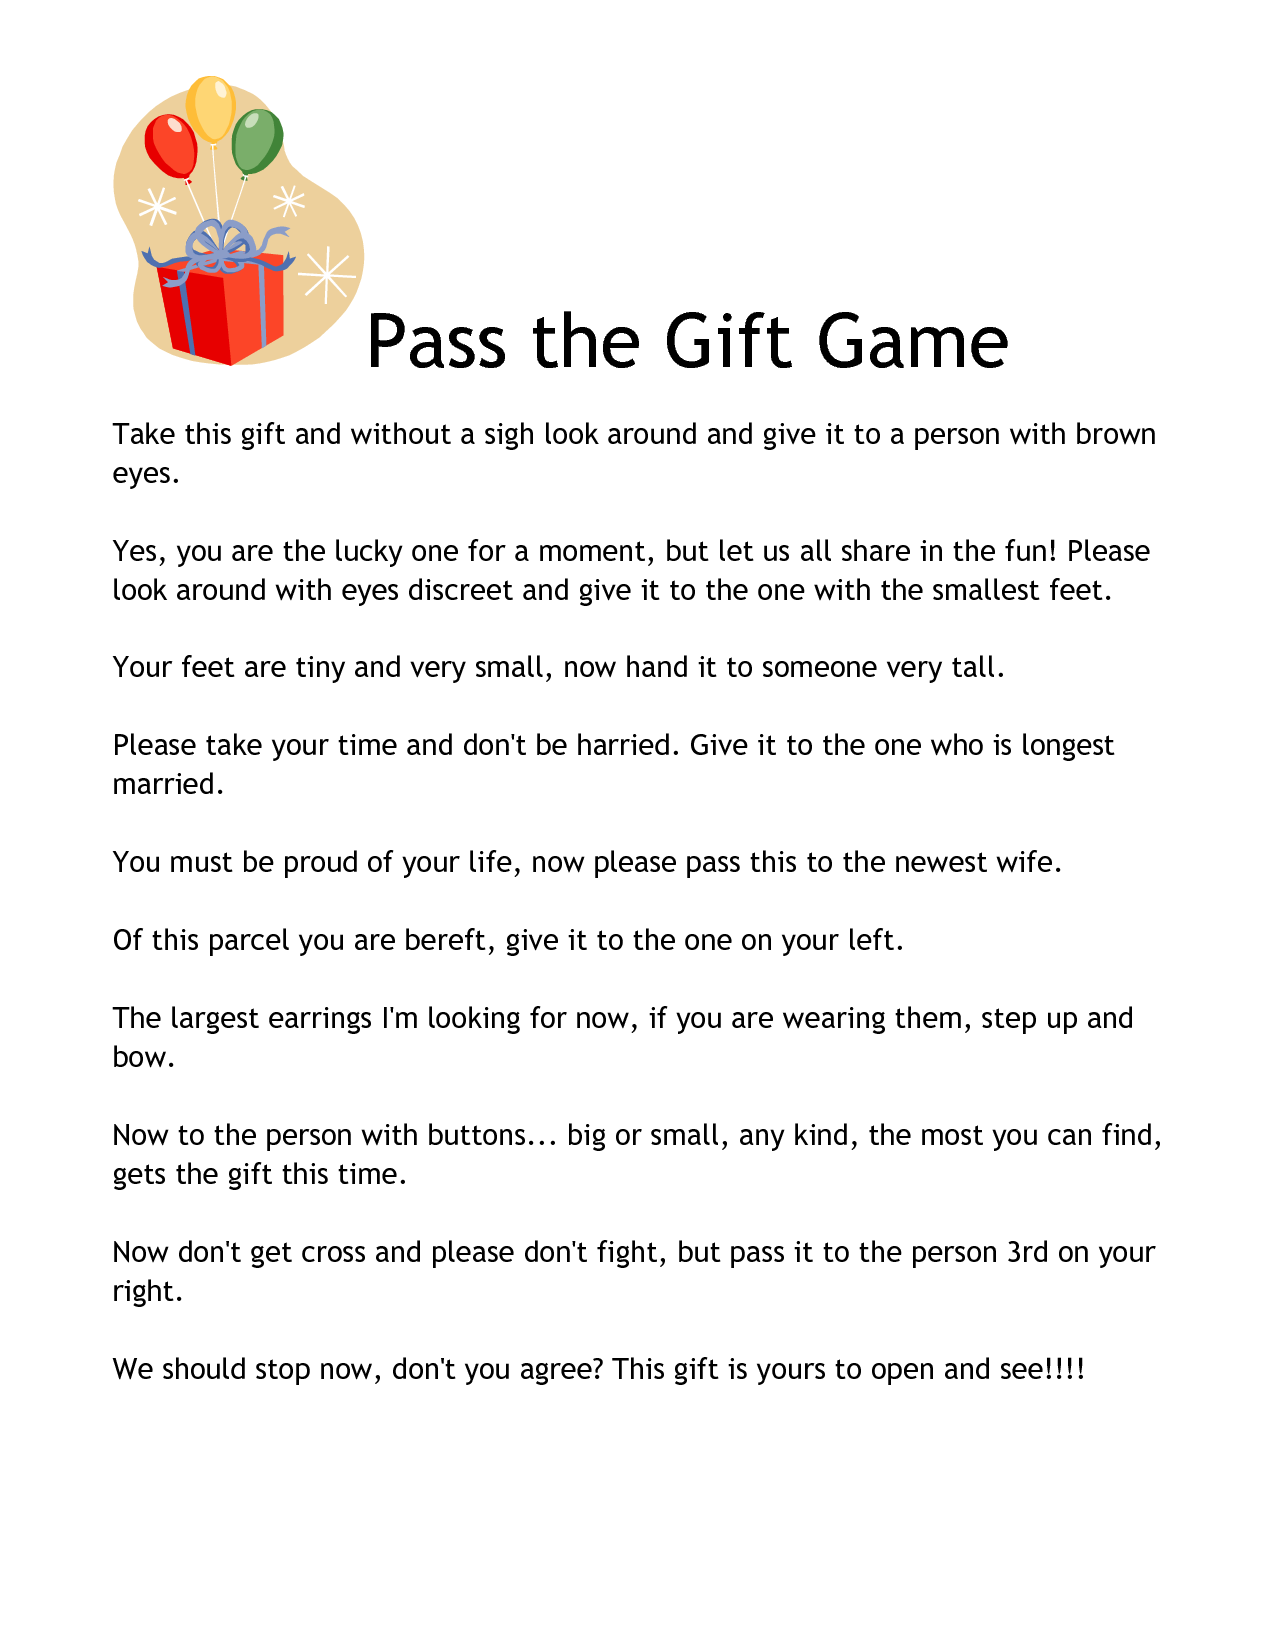 pass the gift game 2pdfpdf download legal documents